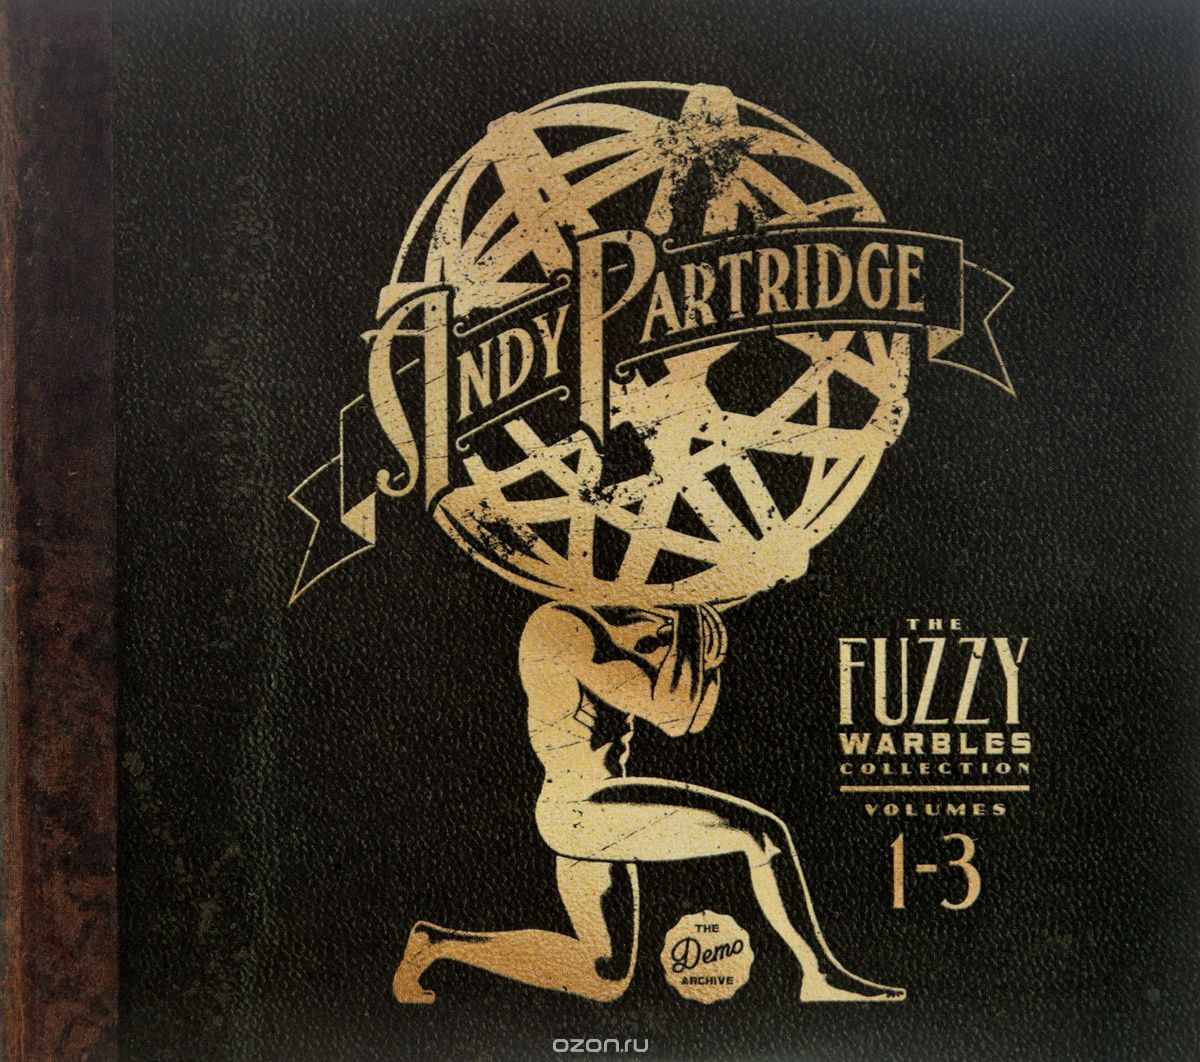 Andy Partridge. Fuzzy Warbles Volume 1-3 (3 CD)